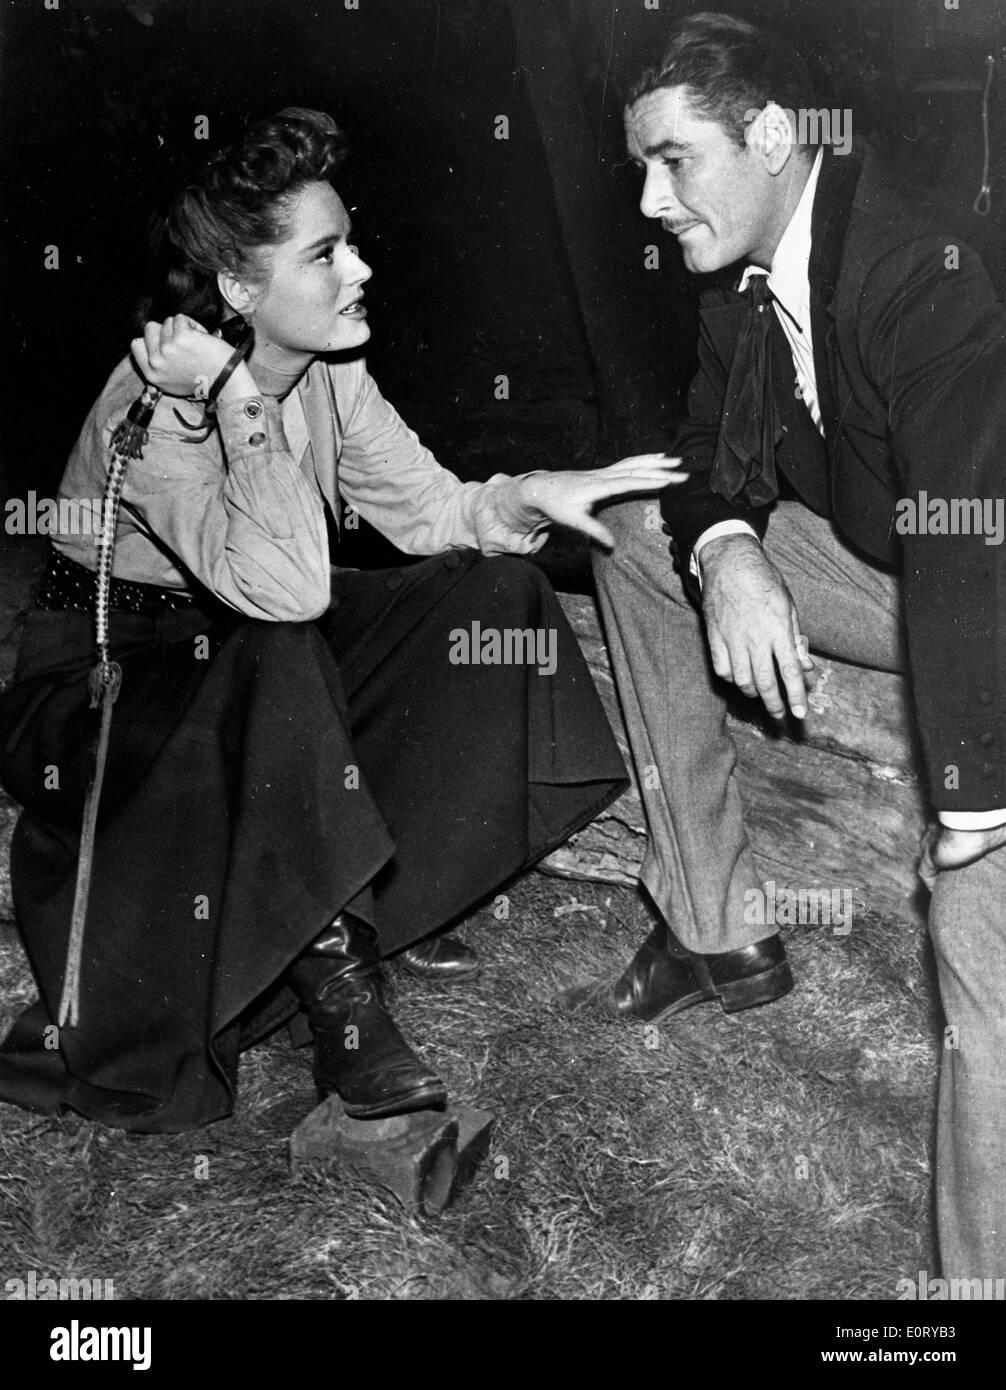 Actor Errol Flynn and co-star in film scene - Stock Image